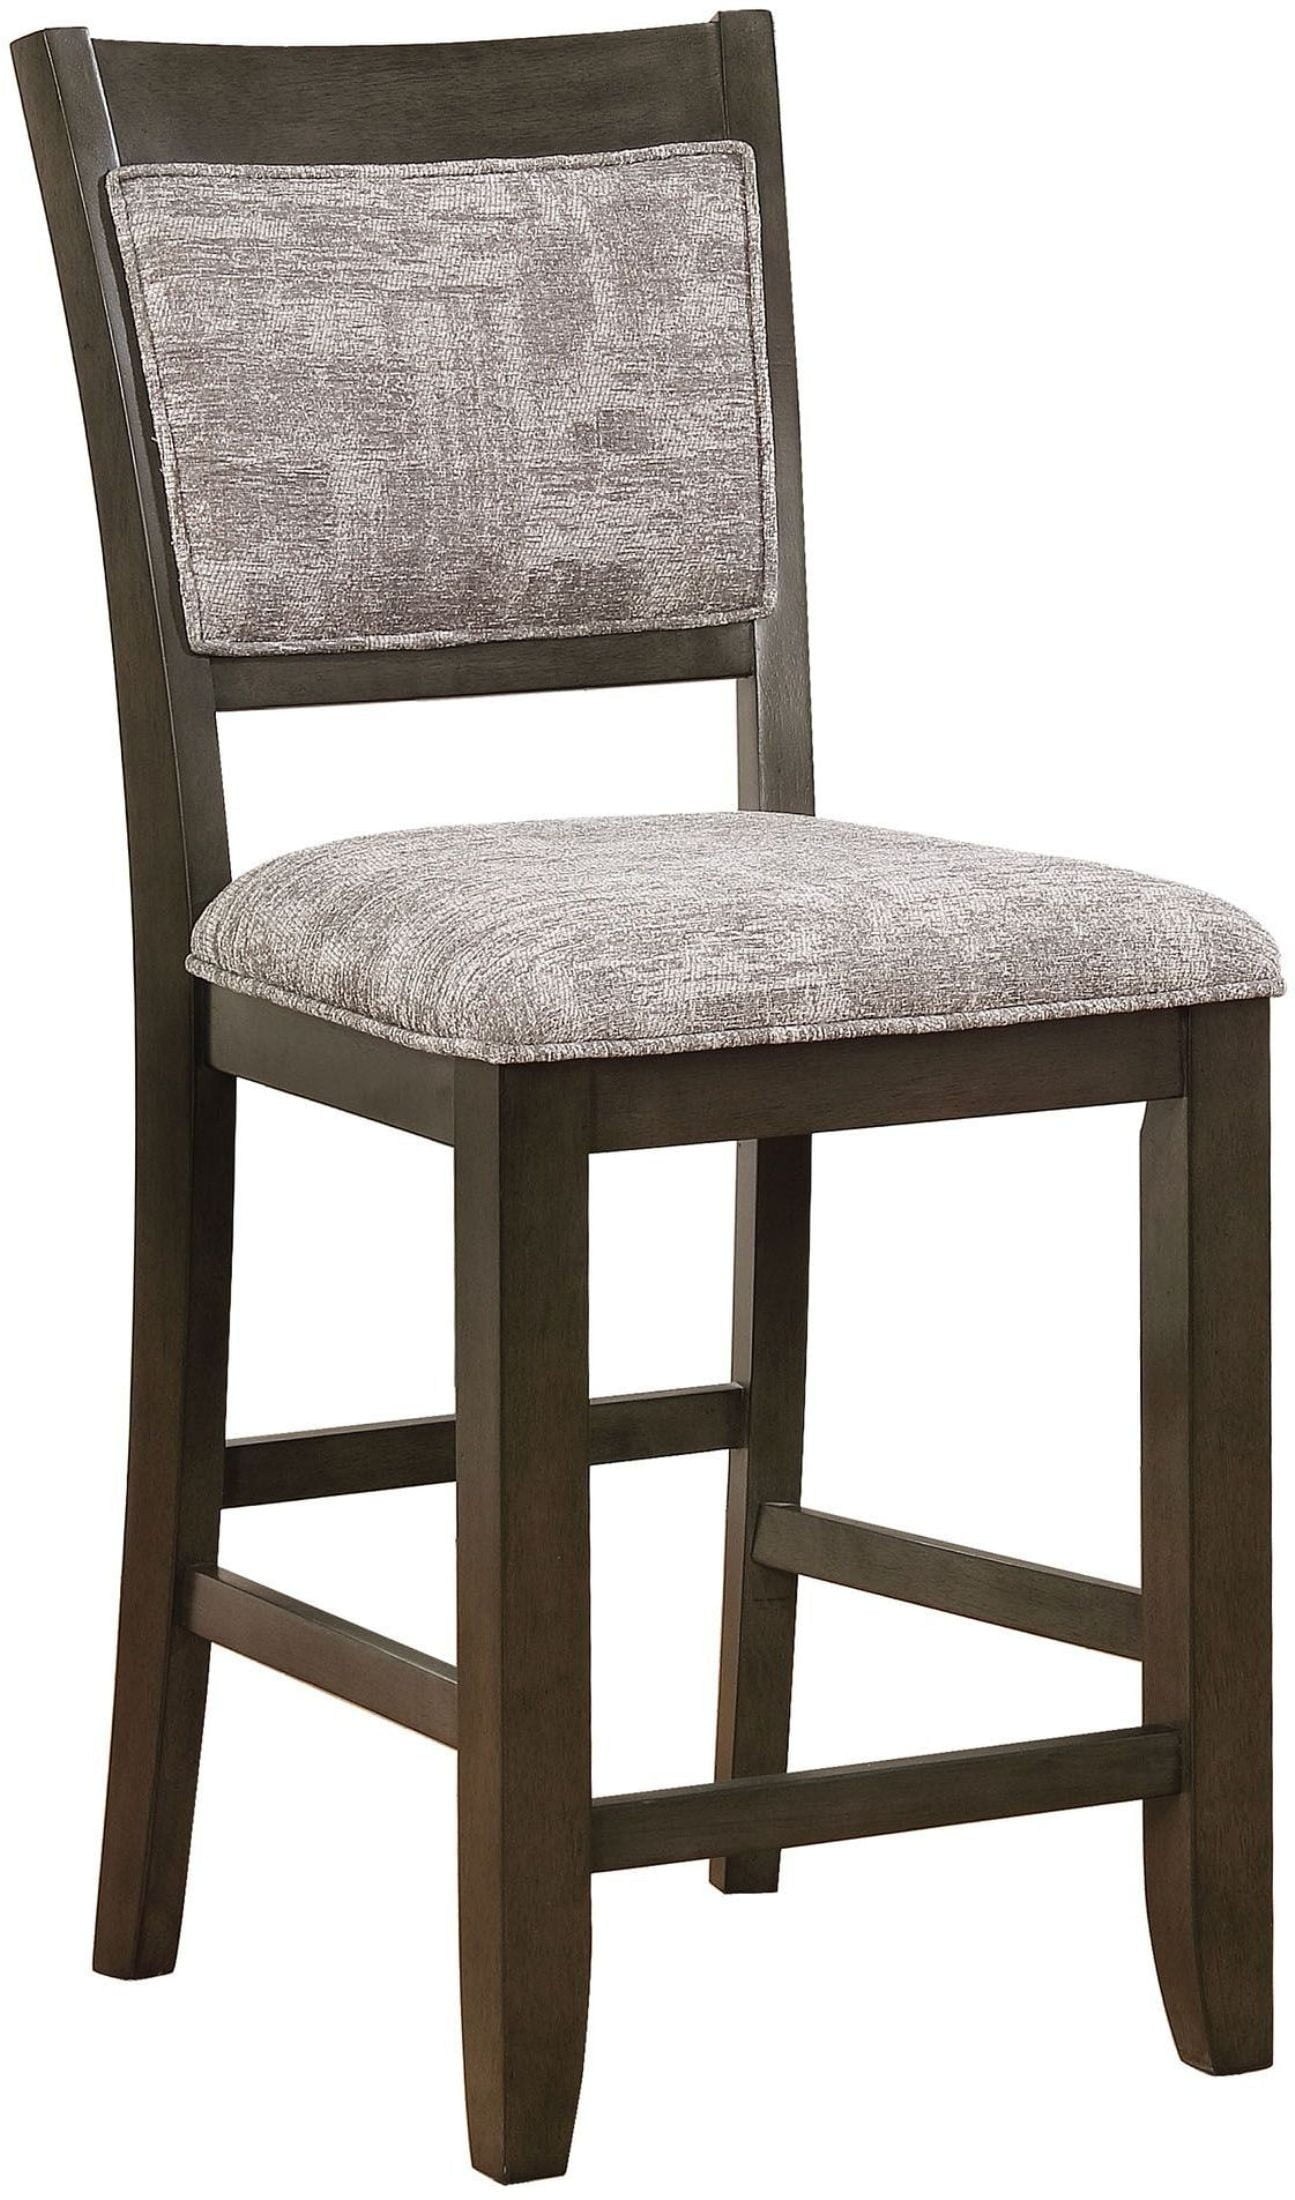 Tollerson Dark Walnut And Light Gray Counter Height Chair Set Of 2  # Muebles Luan Arbo